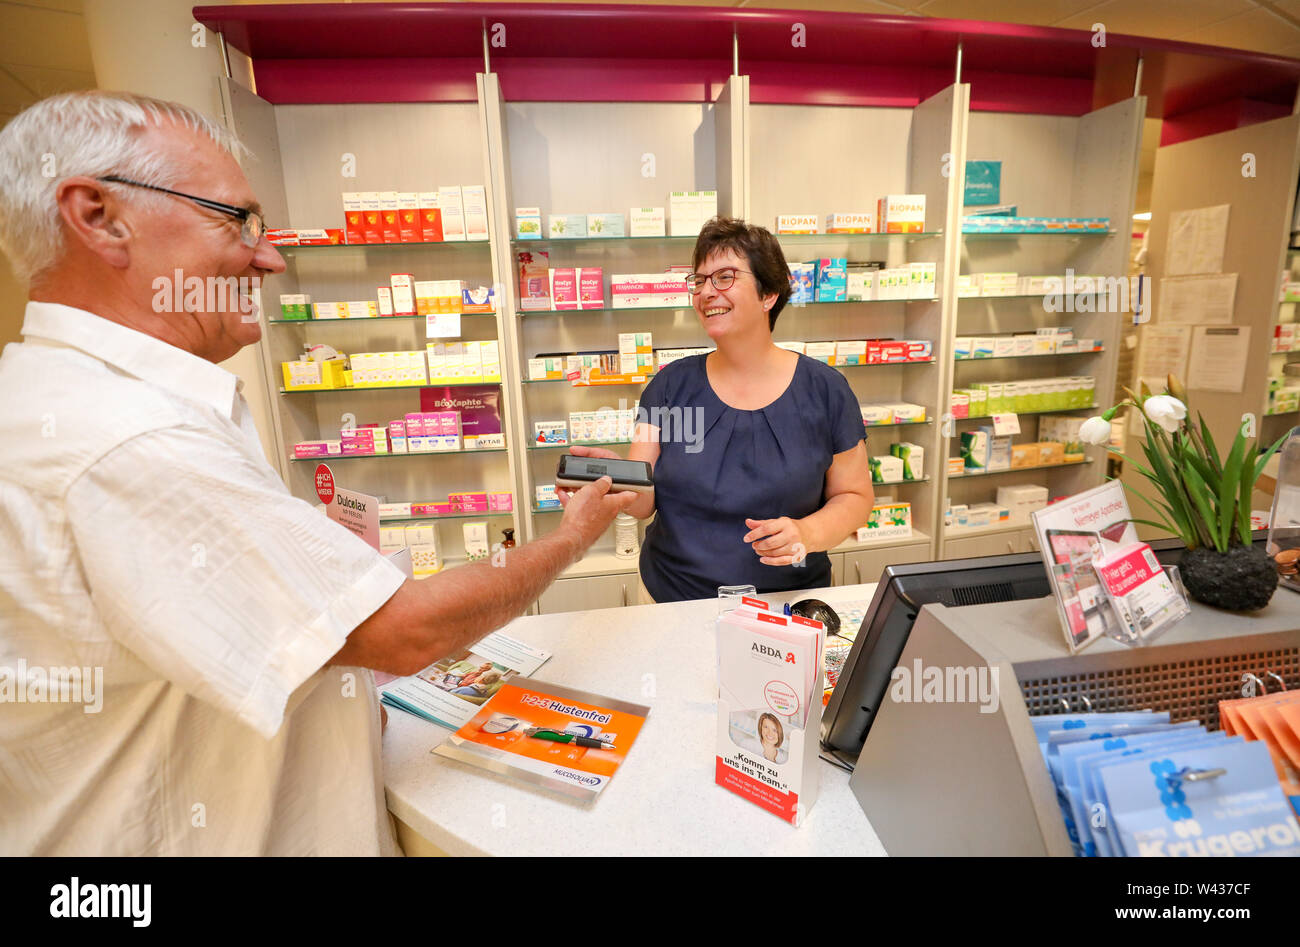 19 July 2019, Saxony-Anhalt, Halle (Saale): Pharmacist Ursula Gütle takes over the mobile phone of pensioner Norbert Neumann with the code for the digital prescription. From the point of view of a housing cooperative in Halle, telemedicine could be a great help, especially for older people. In a project in 20 apartments, 94 percent of the test persons rated the digital doctor's interview as very good or good. For the 'Haendel II' project, 20 apartments were equipped with the appropriate technology. Subjects were able to reach a doctor via tablet. In addition, the apartments were equipped with - Stock Image